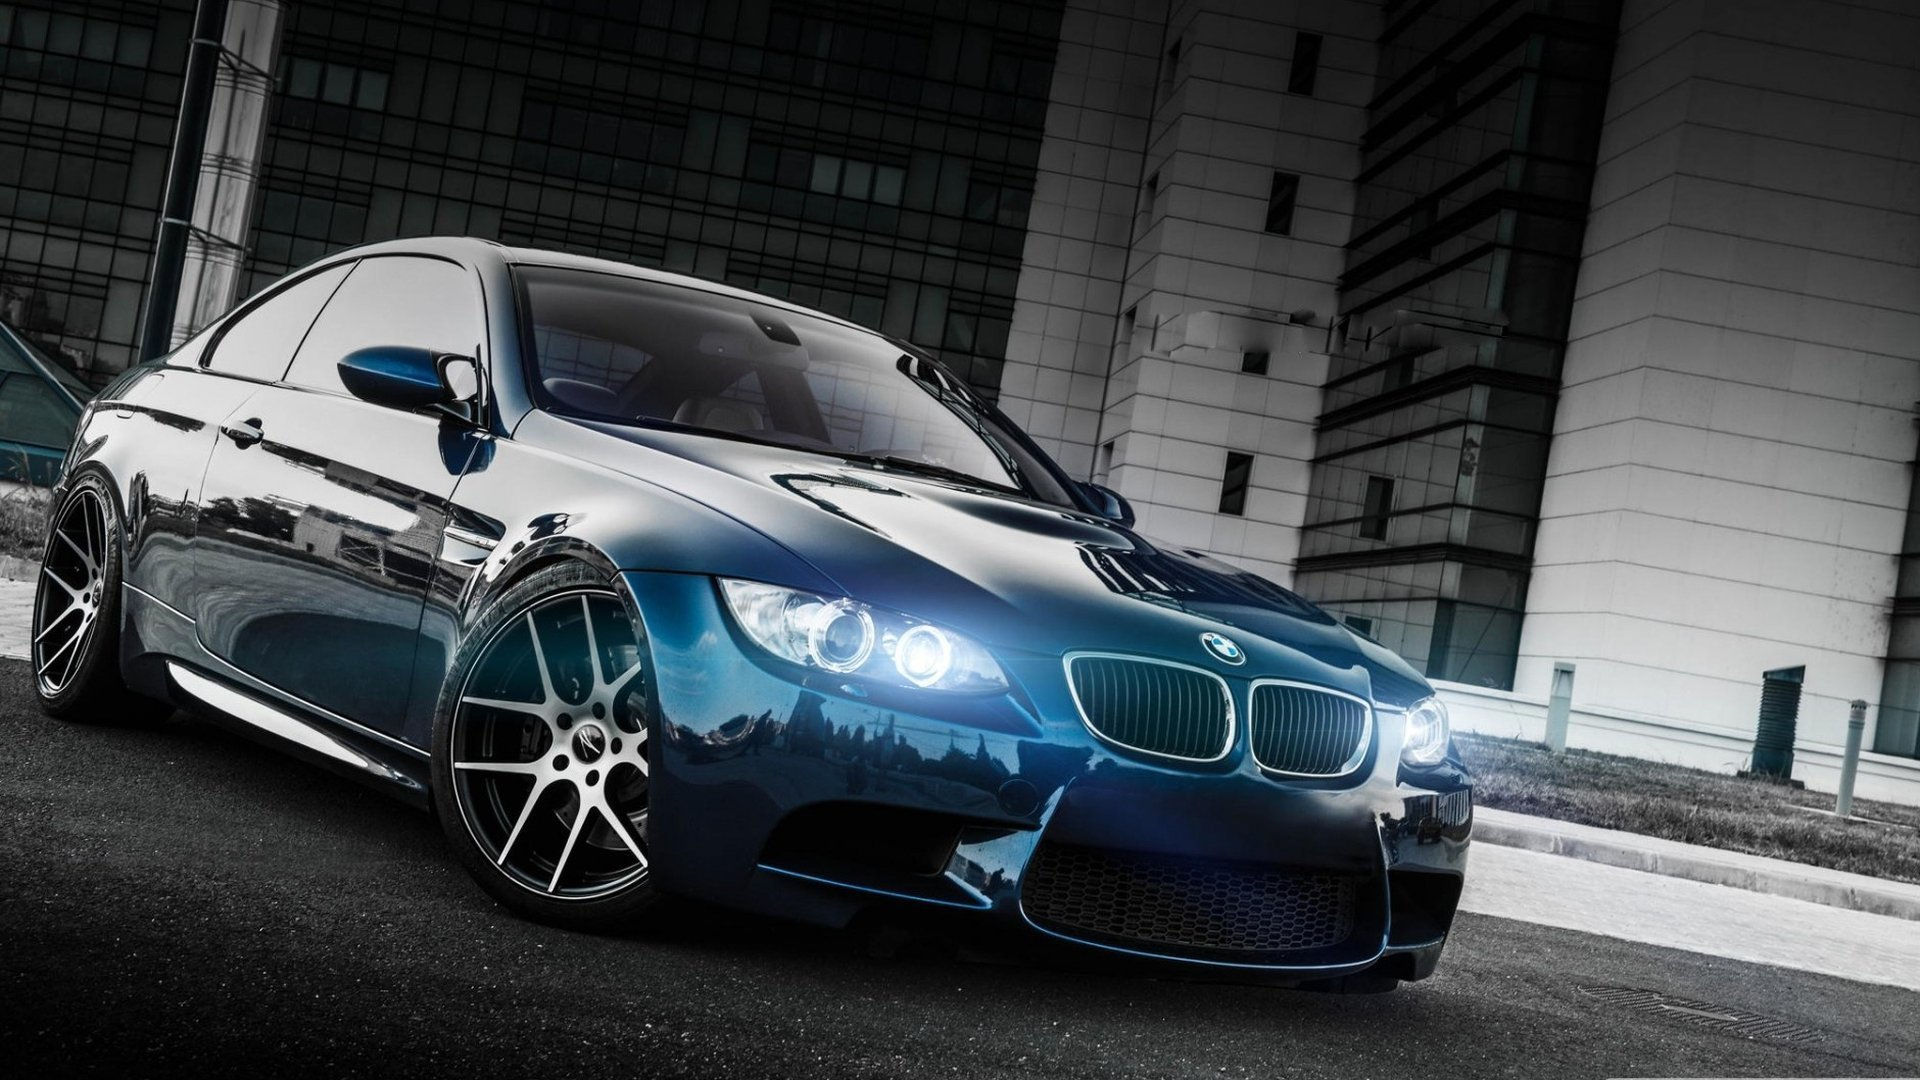 Latest Bmw E92 M3 Full Hd Wallpaper And Background Image Free Download